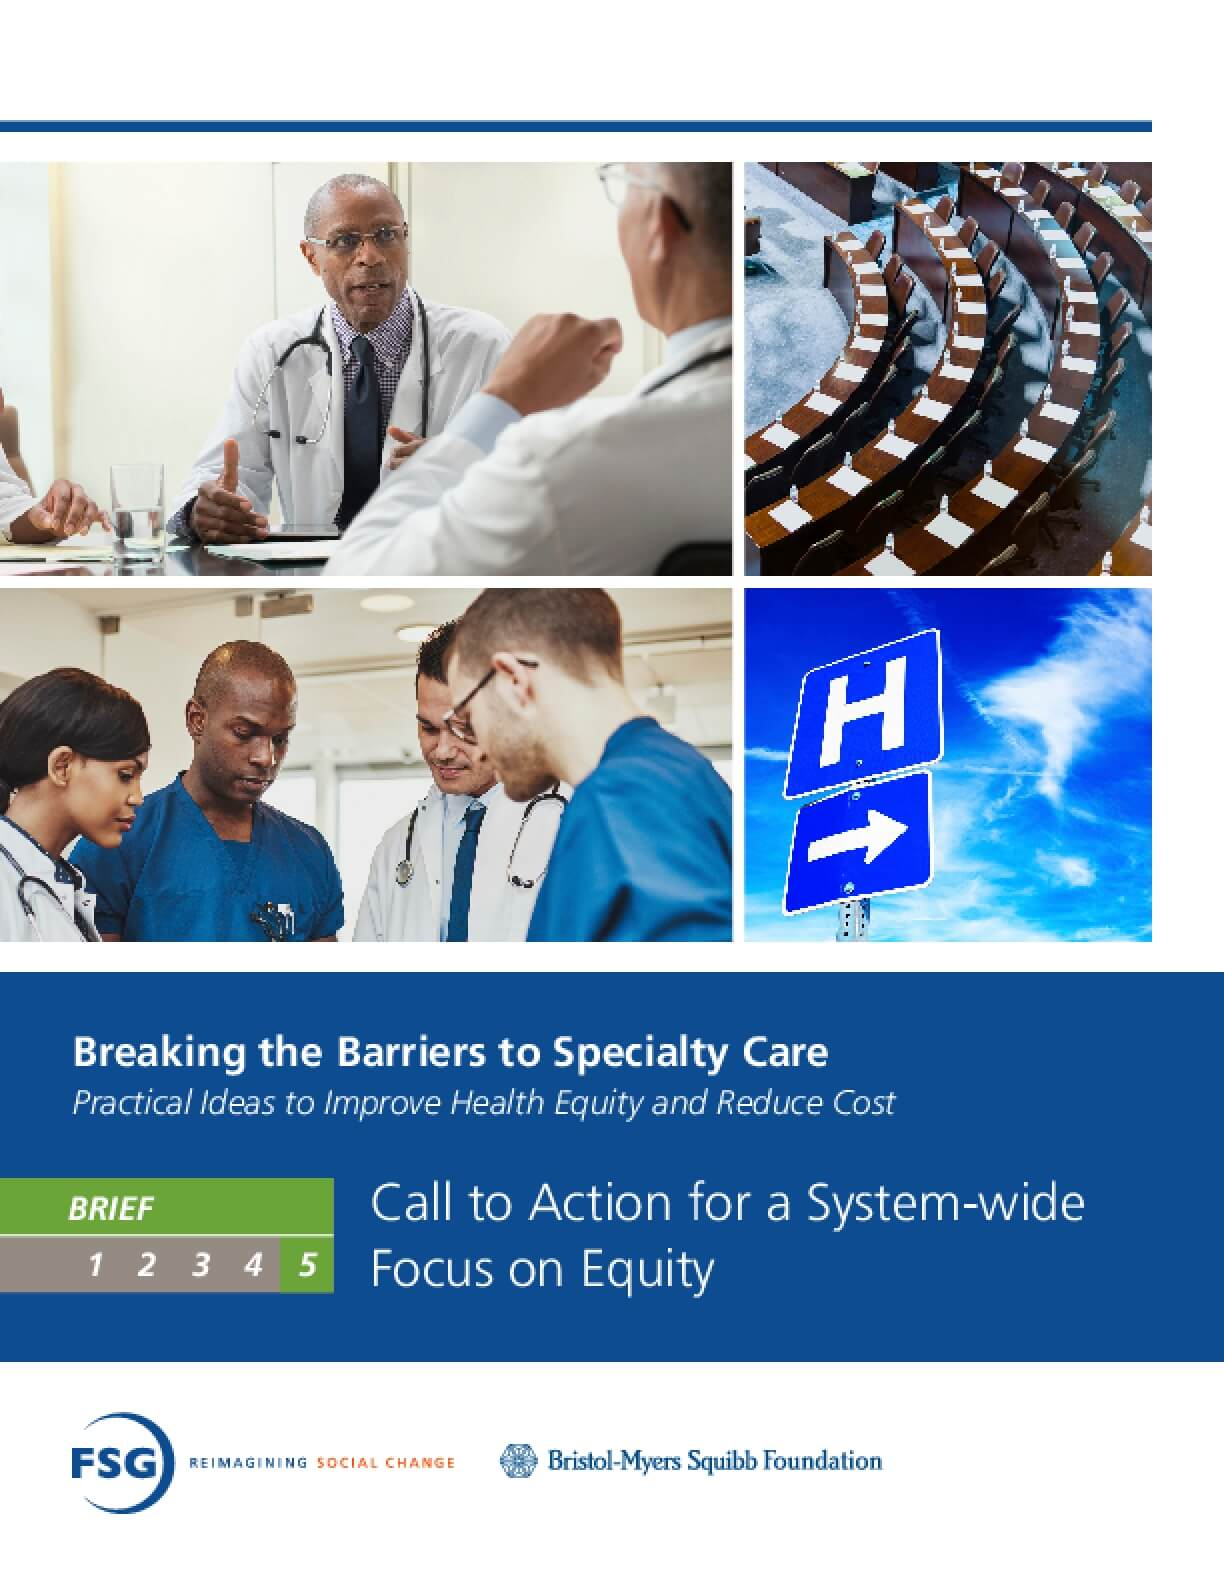 Breaking the Barriers to Specialty Care: Practical Ideas to Improve Health Equity and Reduce Cost - Call to Action for a System-wide Focus on Equity